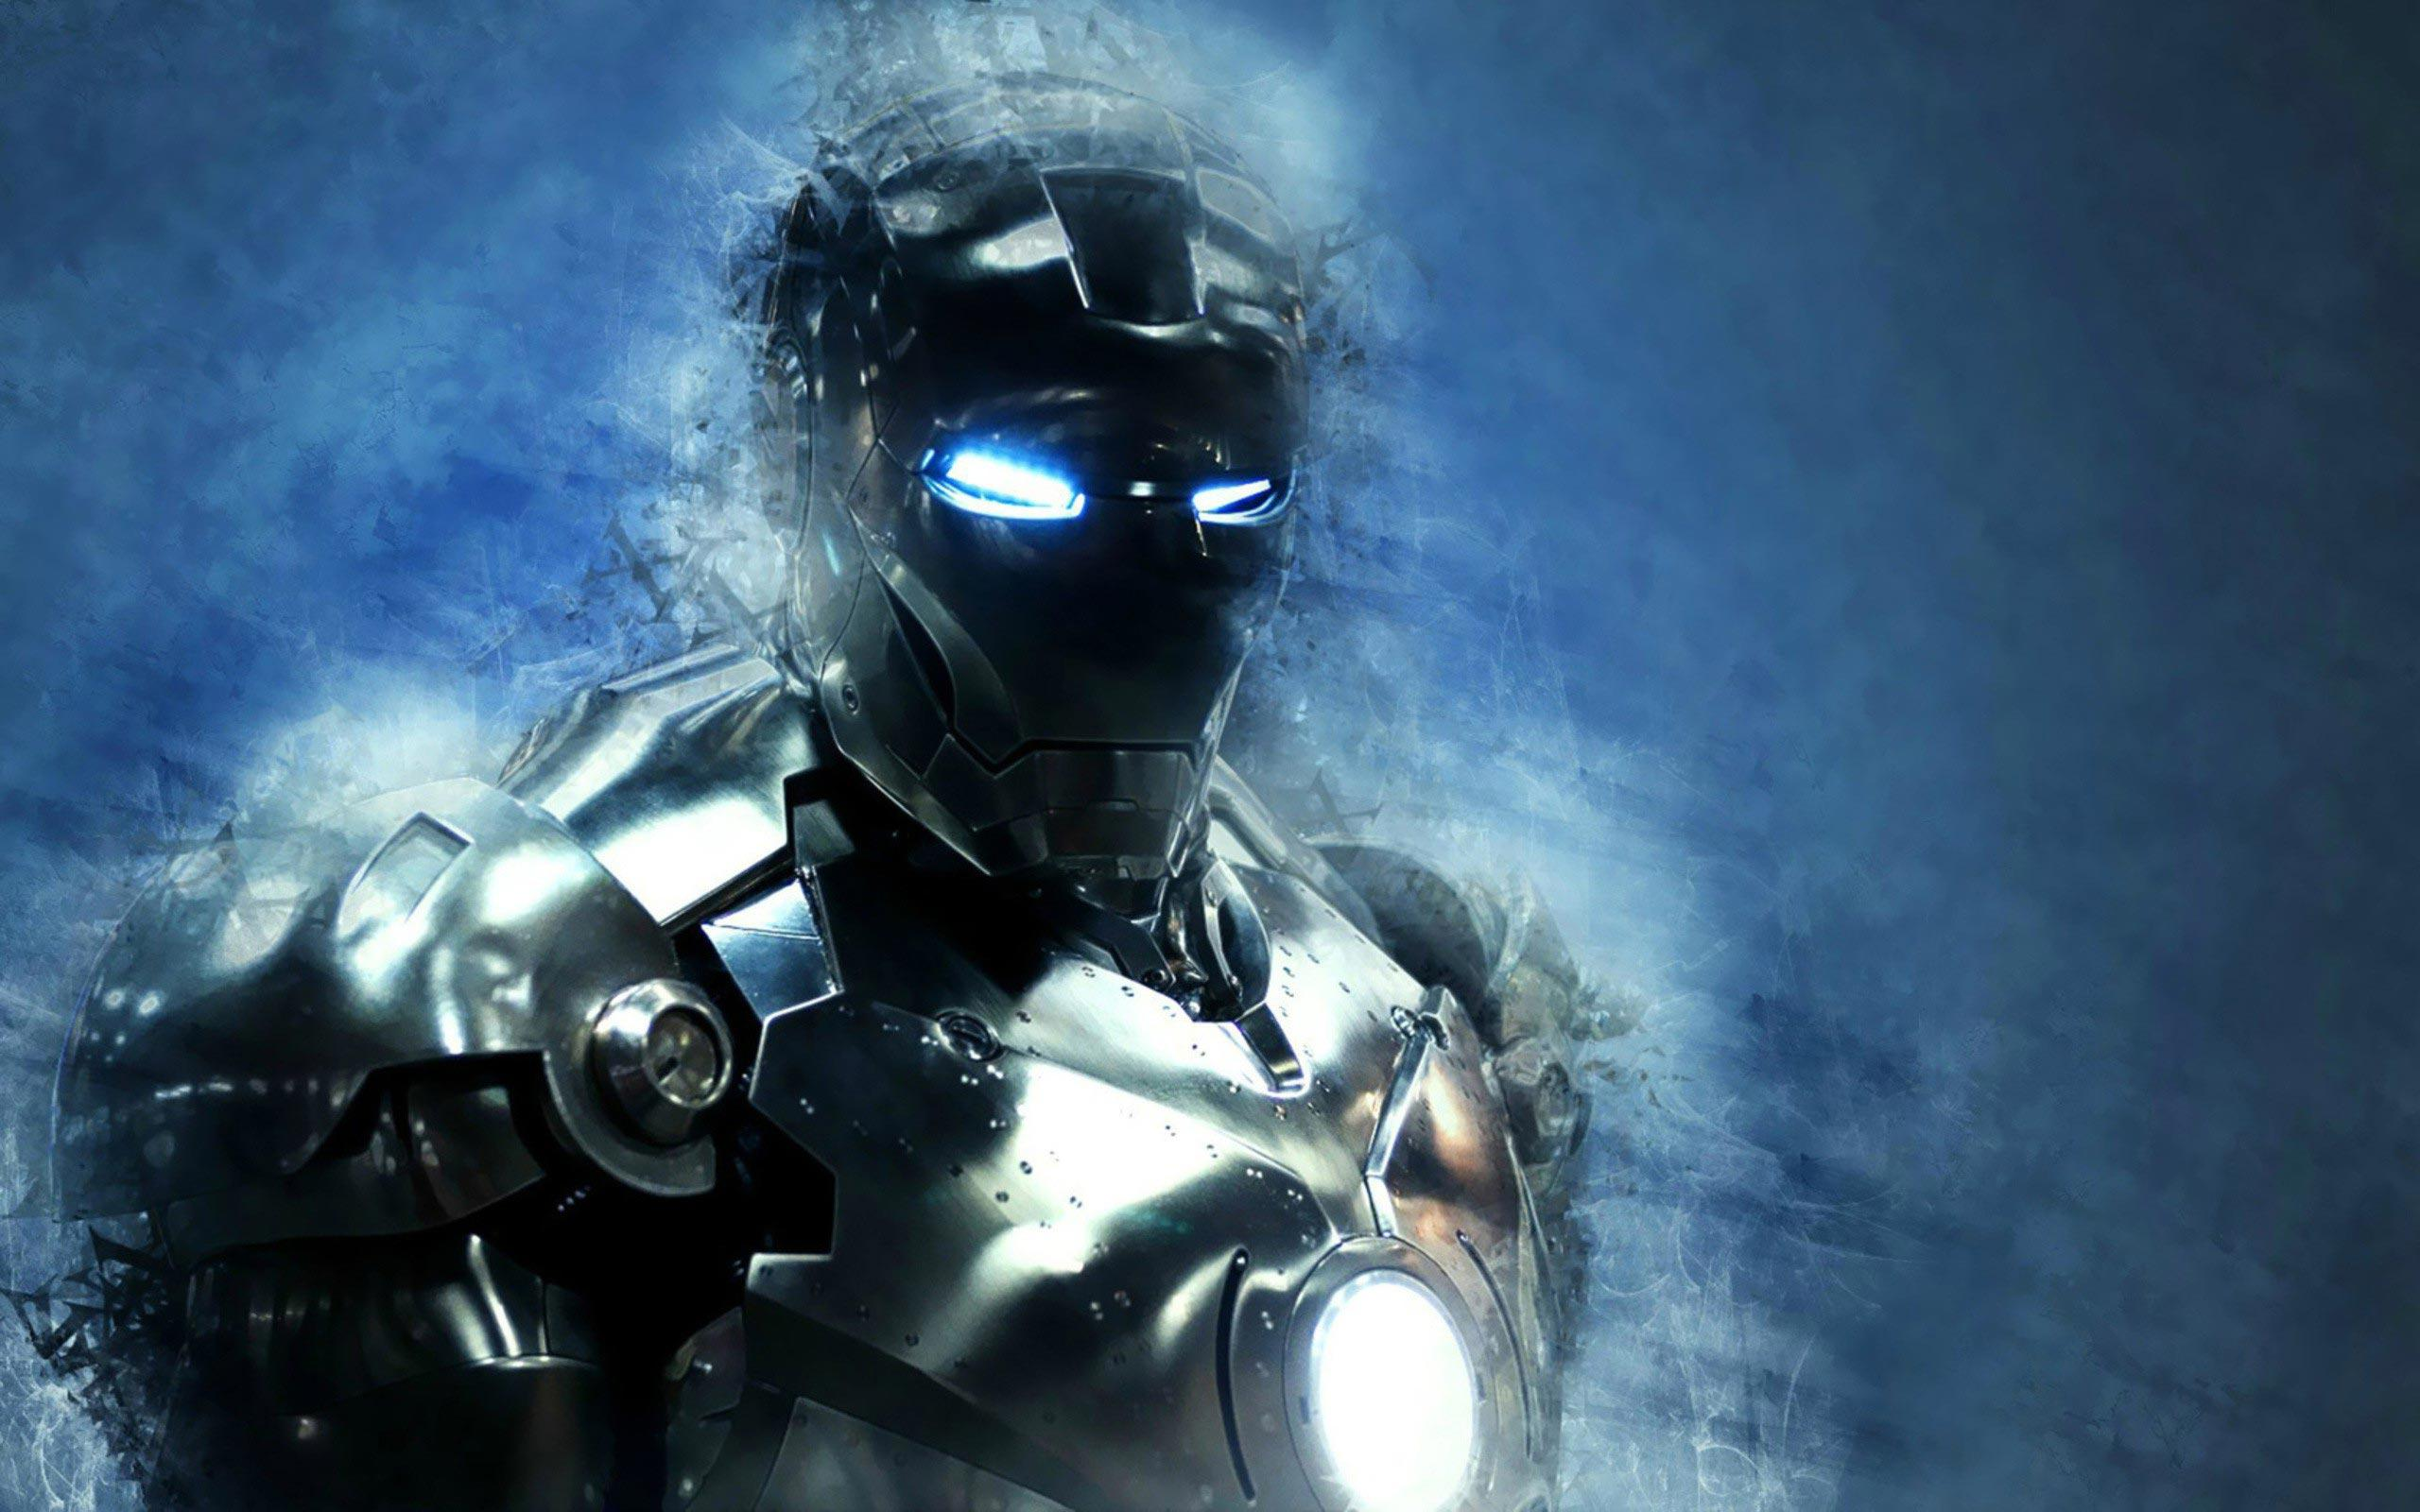 50 hd wallpapers of comic heroes and villains androidguys